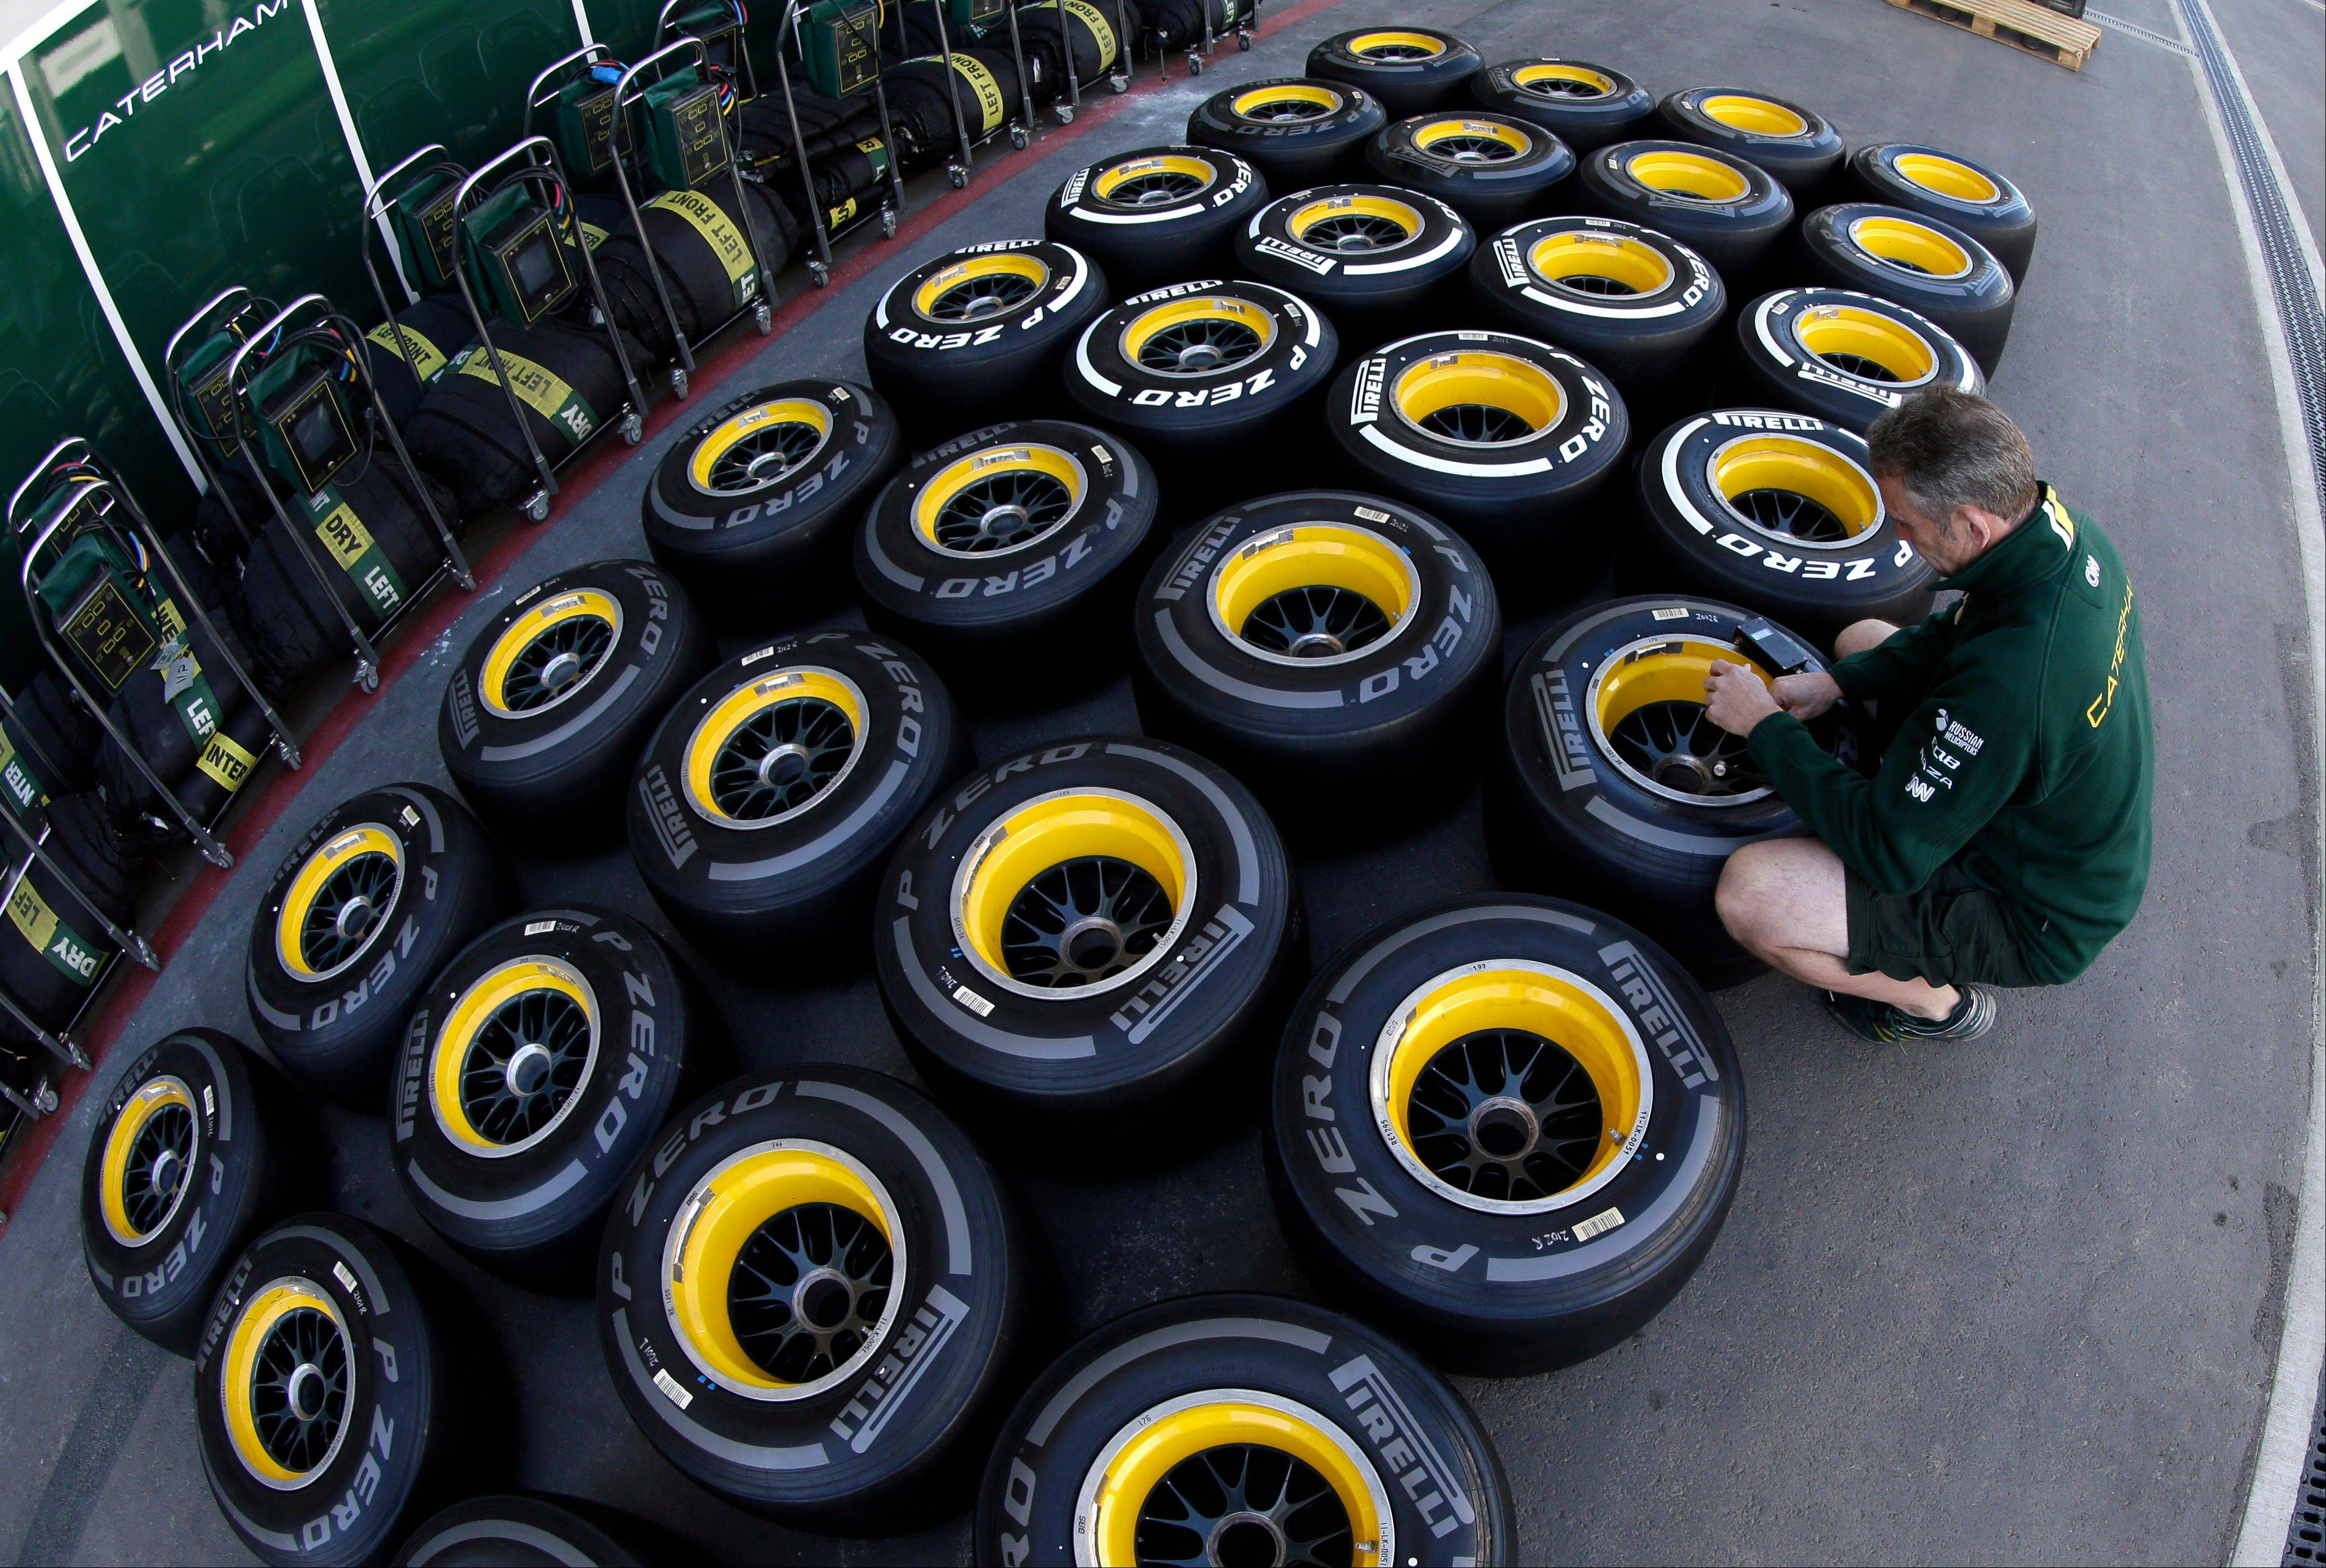 Caterham F1 team technician Barry Mines checks tire pressures at the Circuit of the Americas racetrack in Austin, Texas, on Wednesday.